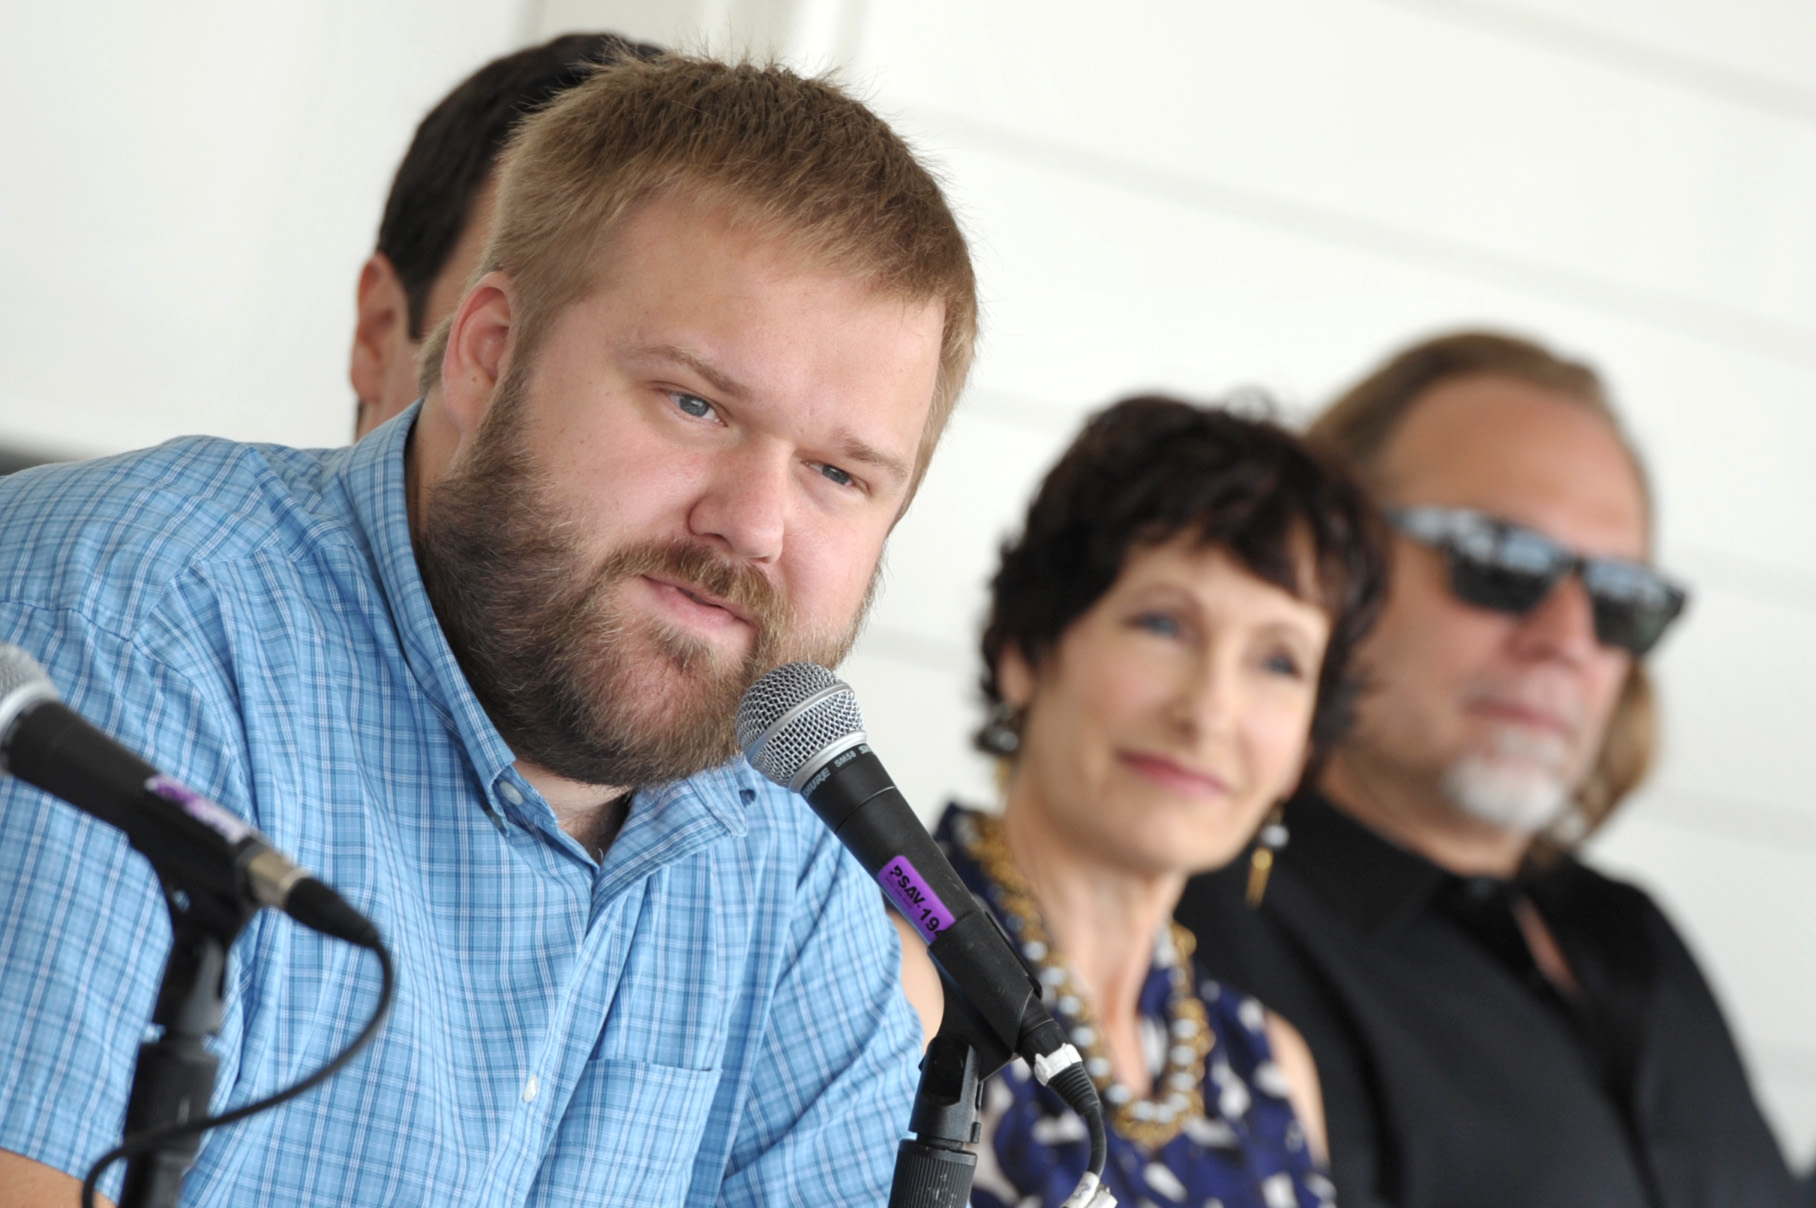 Robert Kirkman, far left (Photo by John Shearer/Invision for AMC/AP Images)